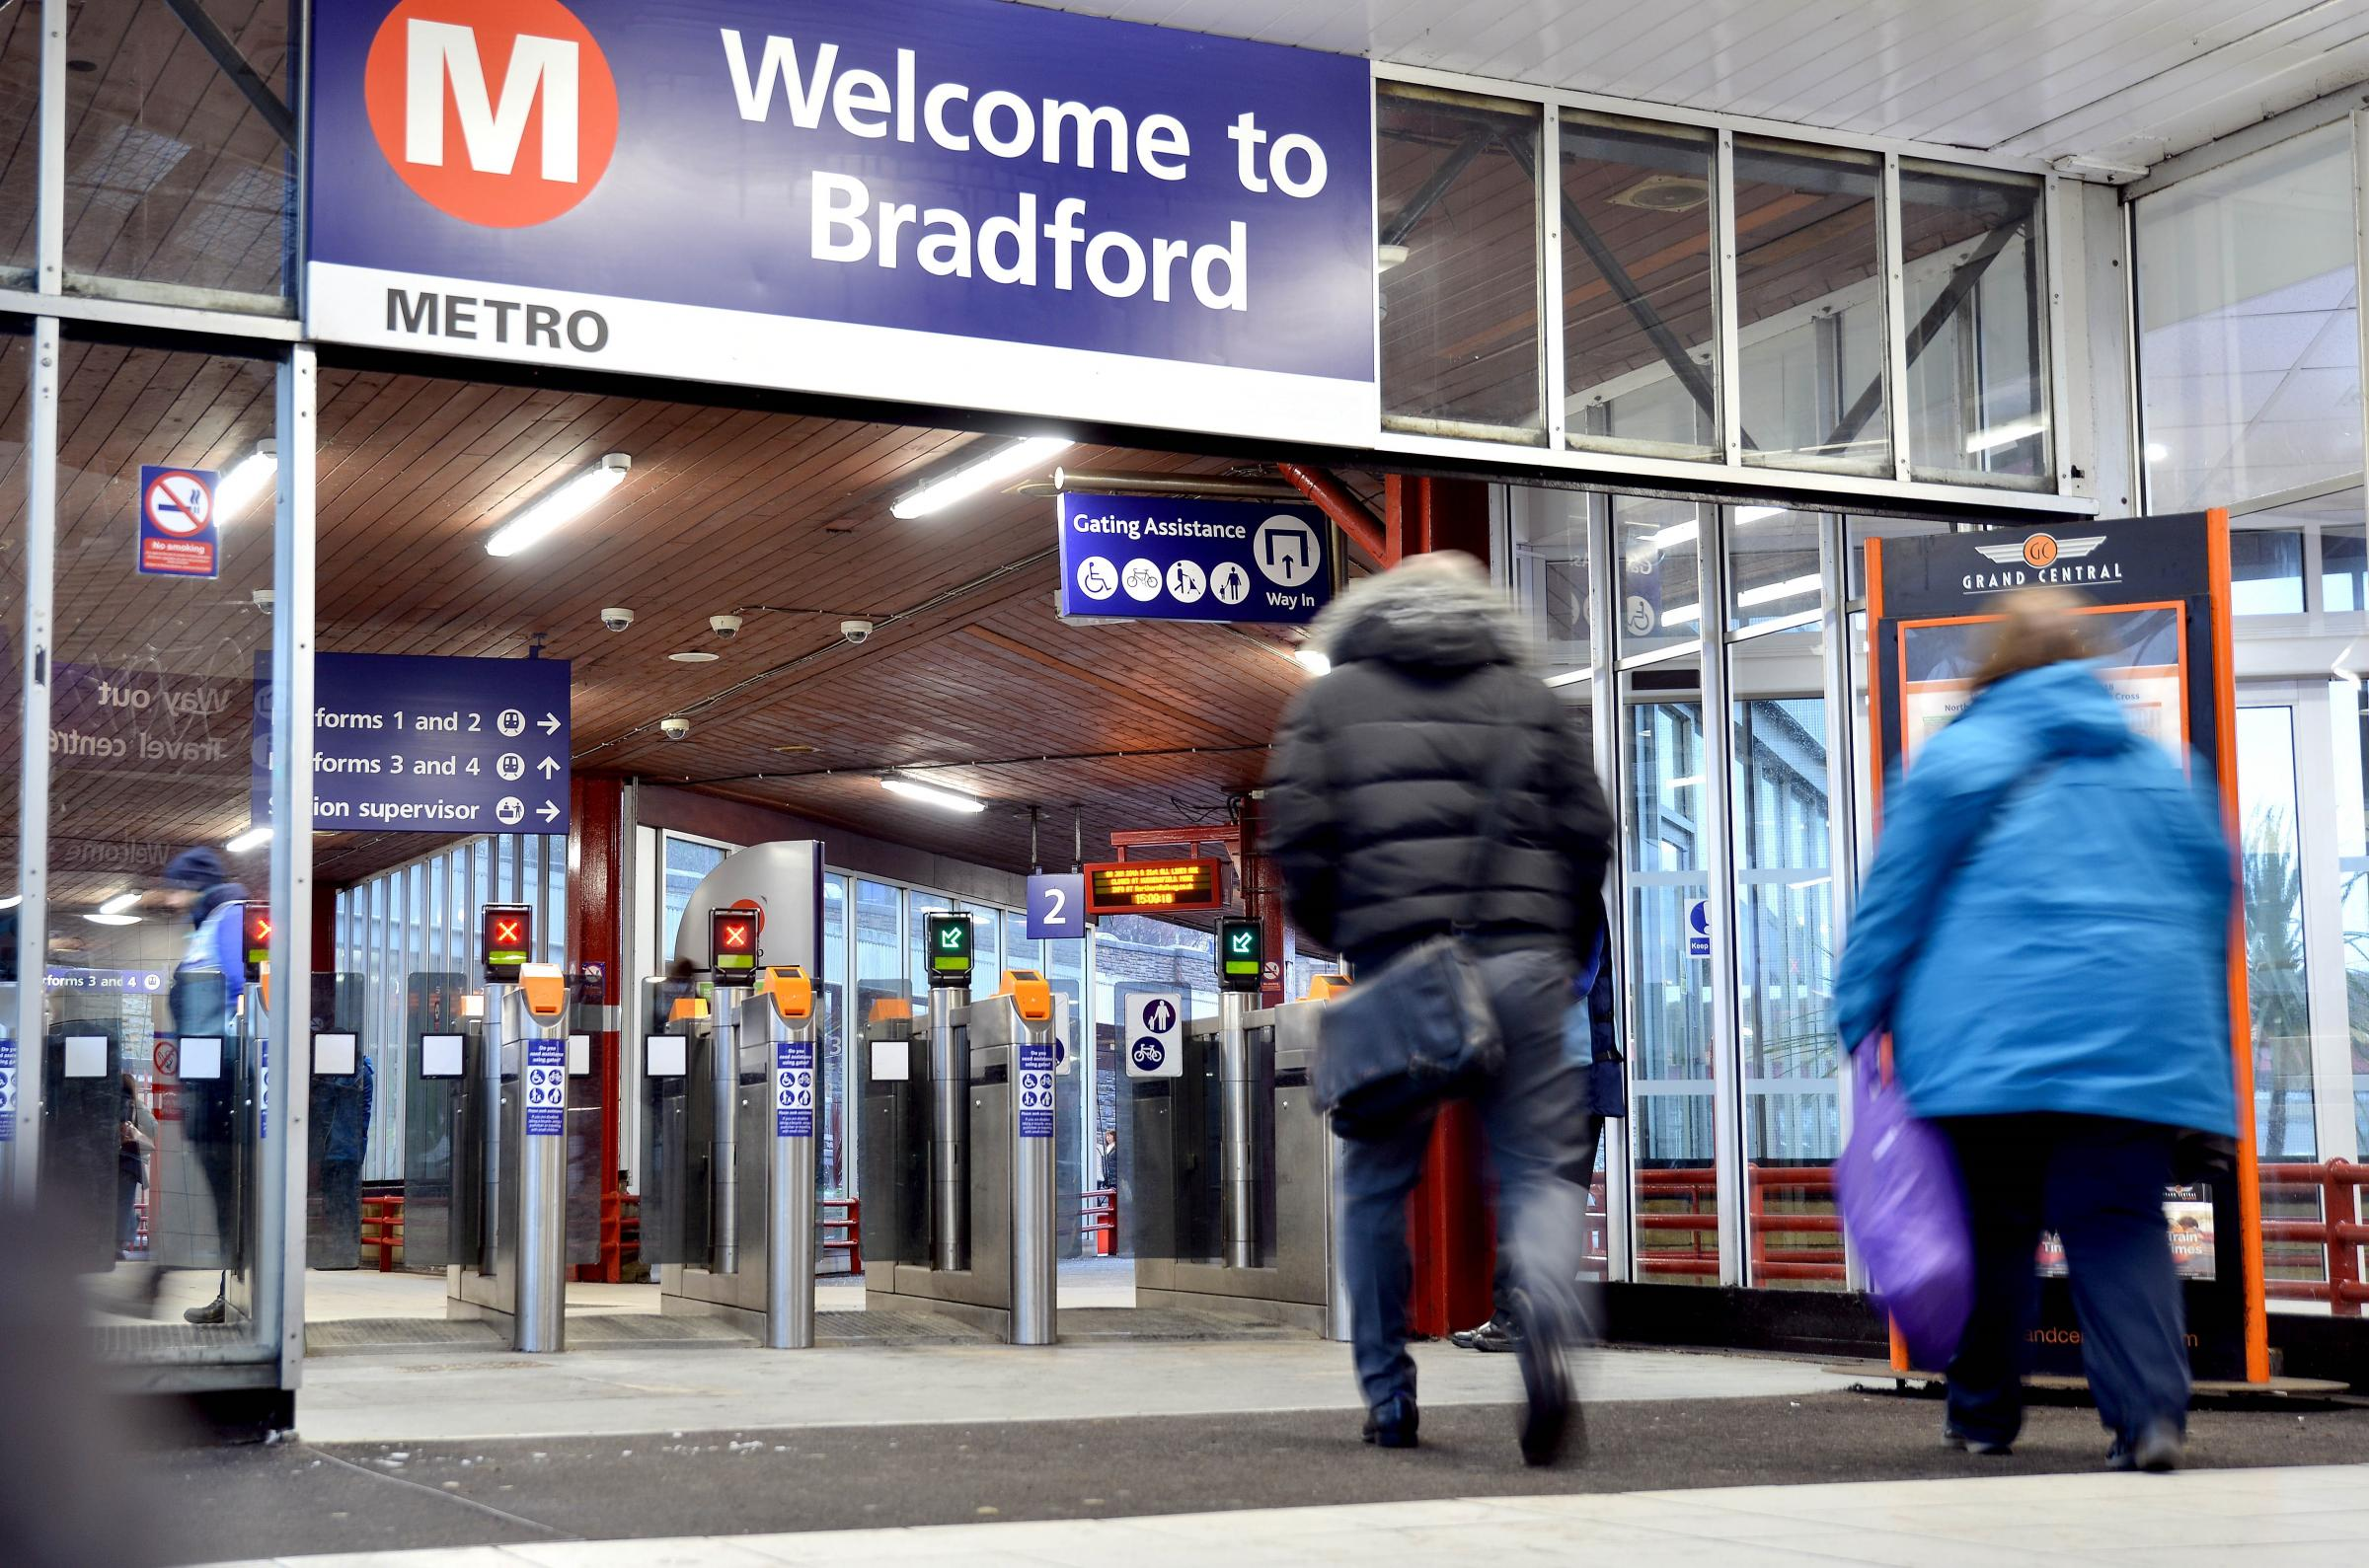 Bradford Interchange Station.